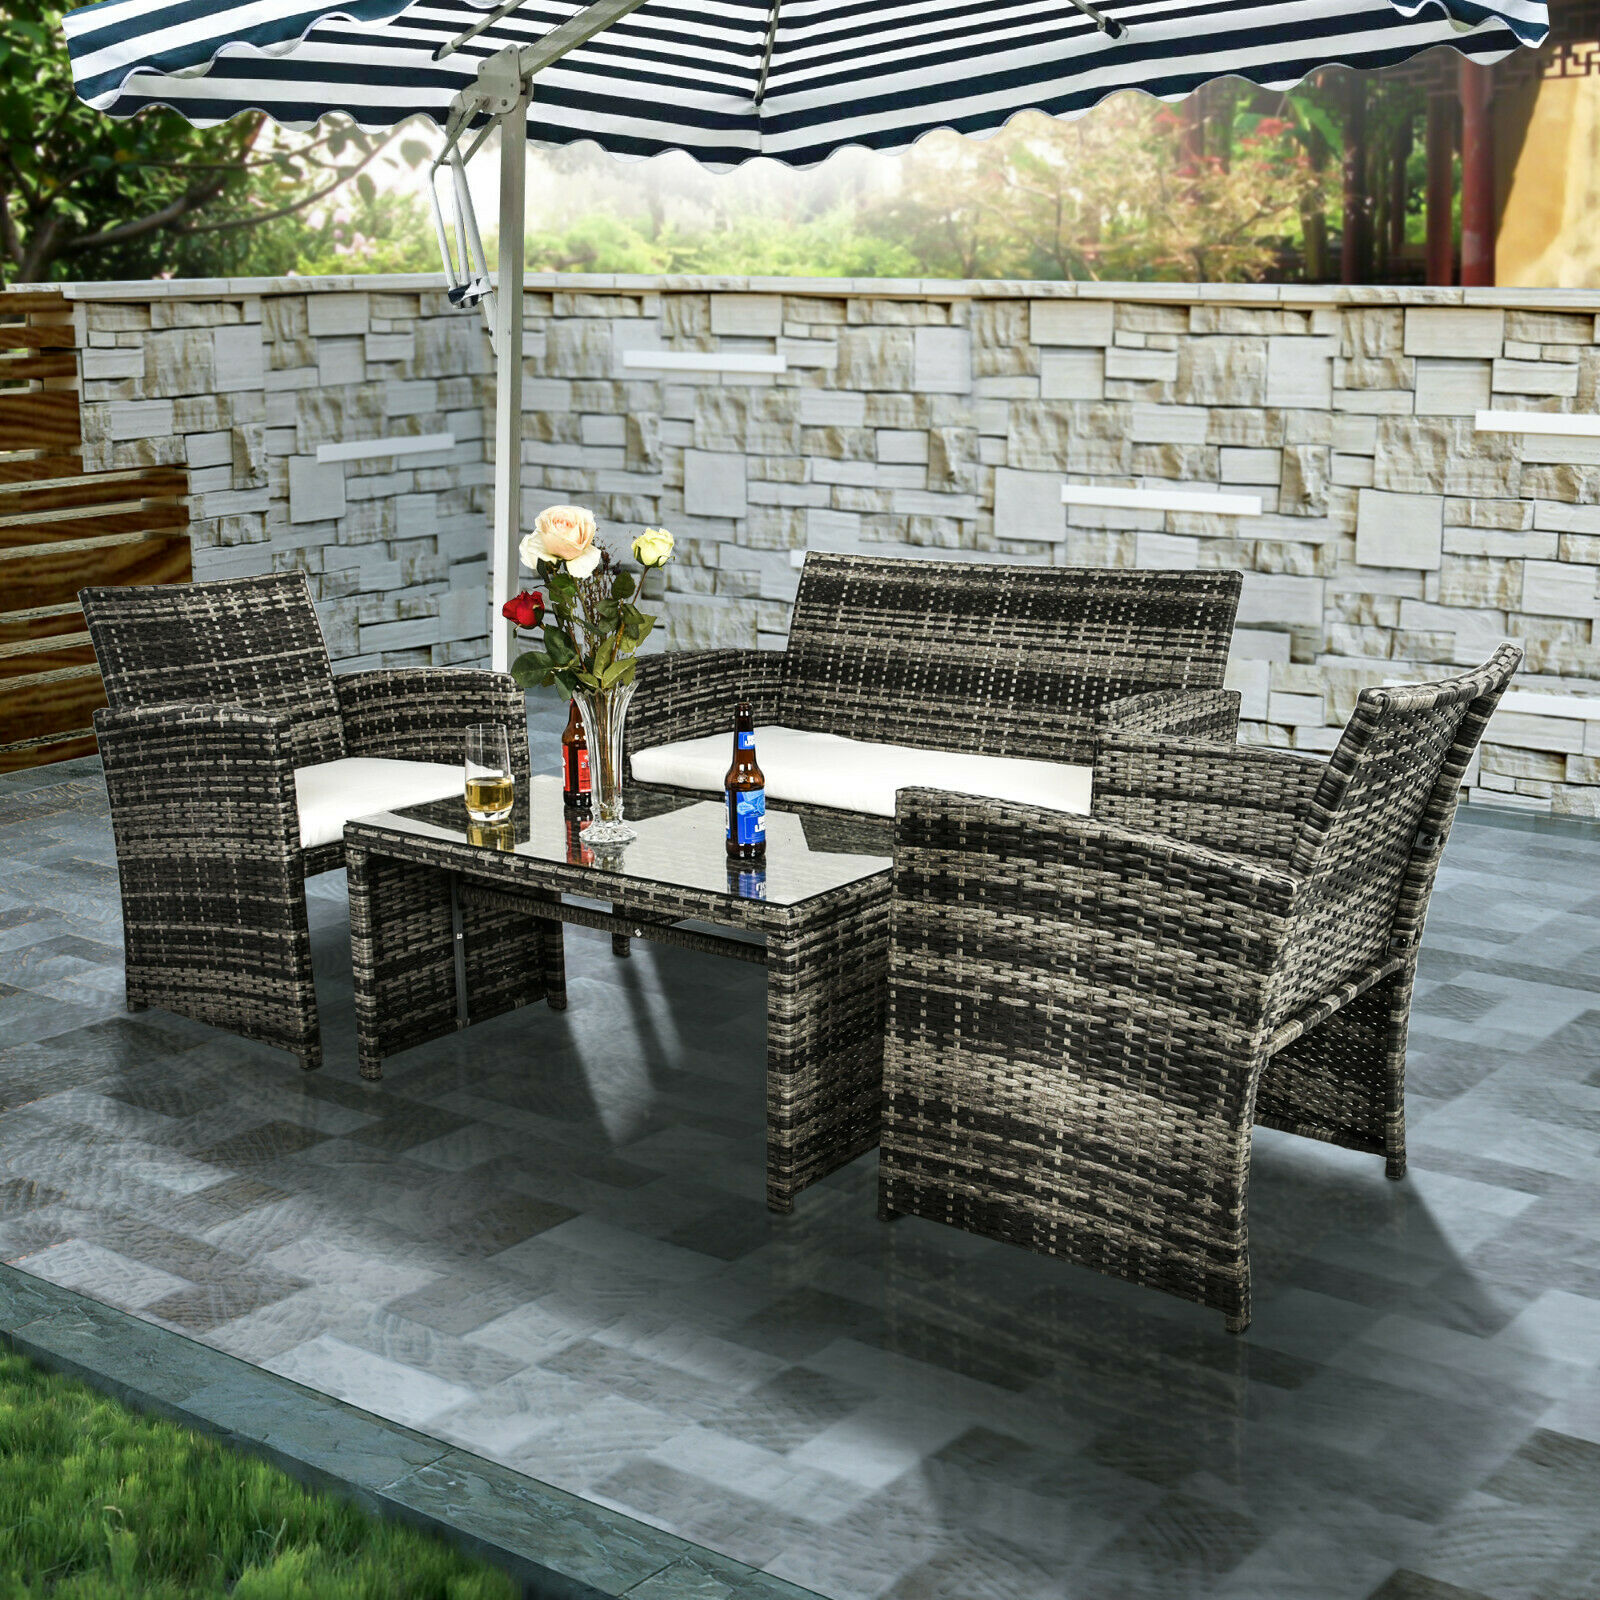 Garden Furniture - Patio Sofa Set Wicker Furniture Outdoor Sectional Set 4PCS Garden Rattan Cushion